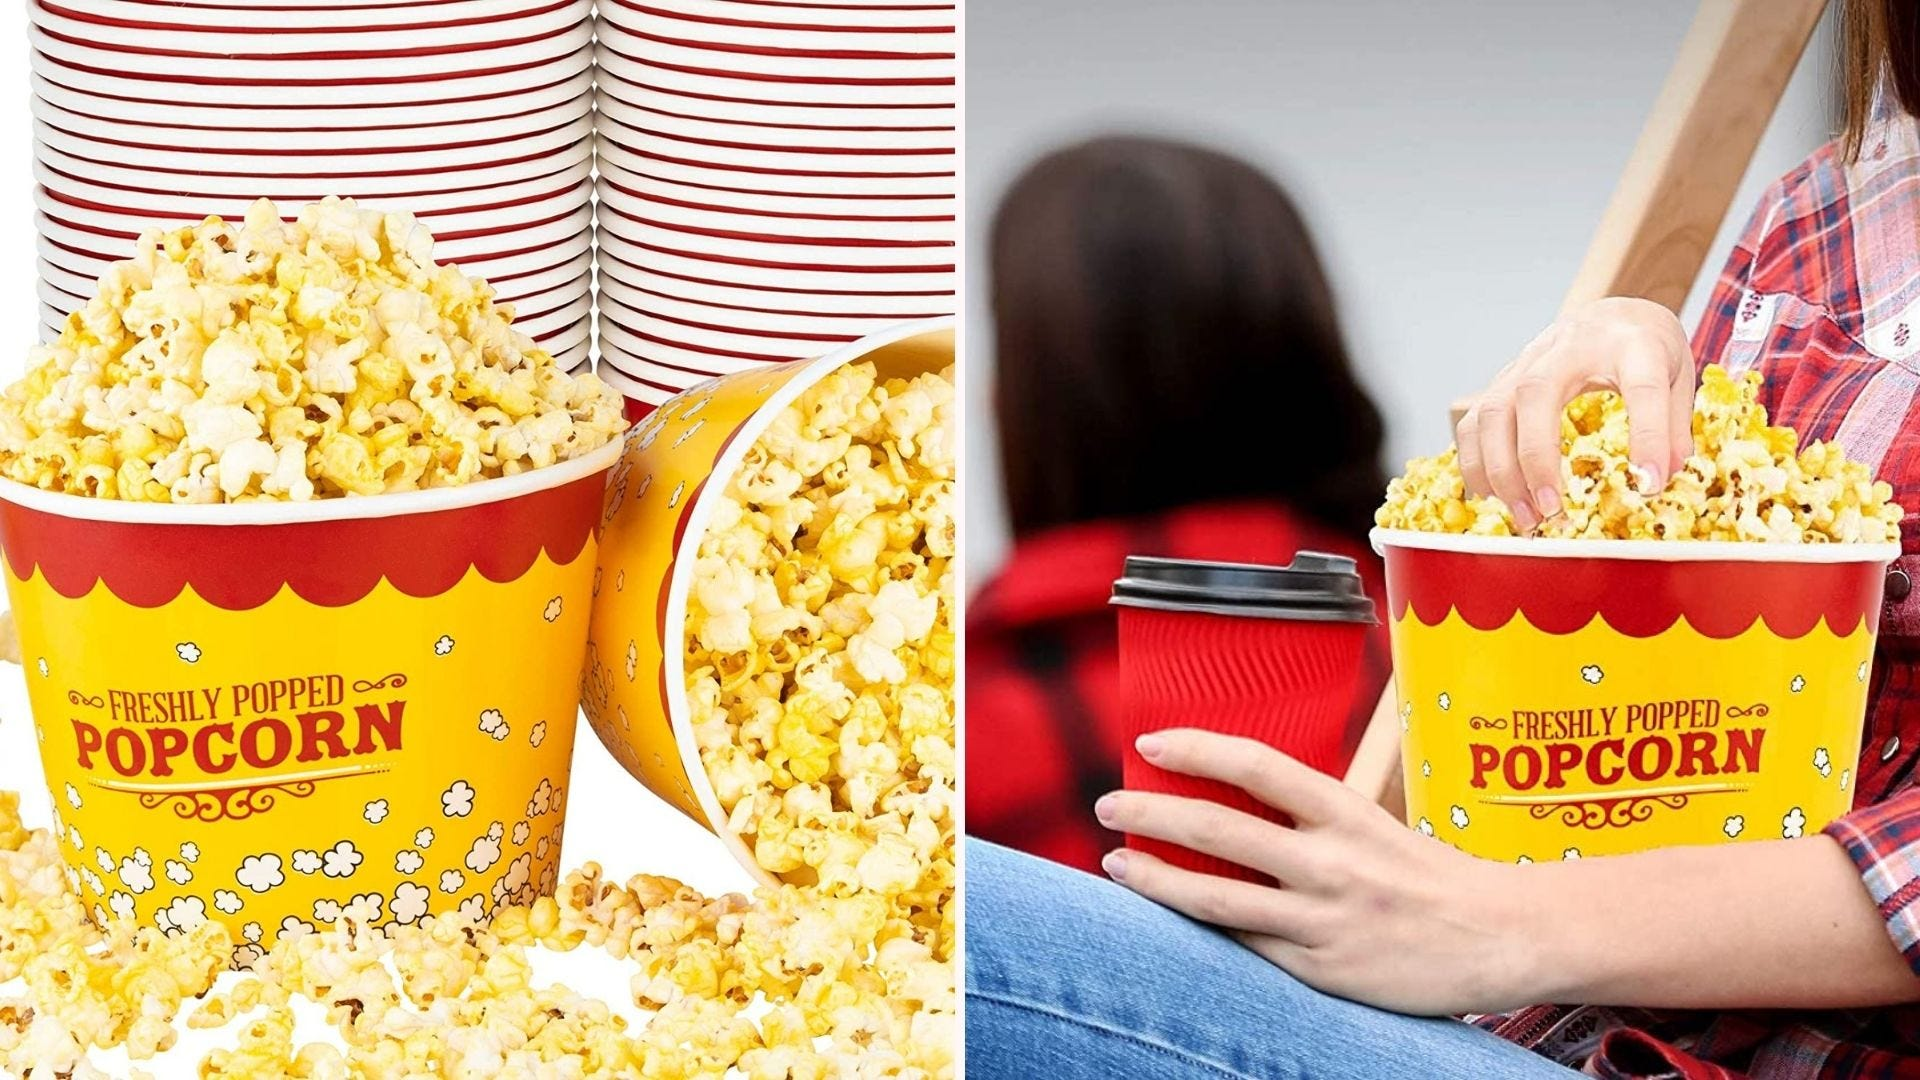 A stack of popcorn buckets; a yellow popcorn bucket held by a woman wearing jeans